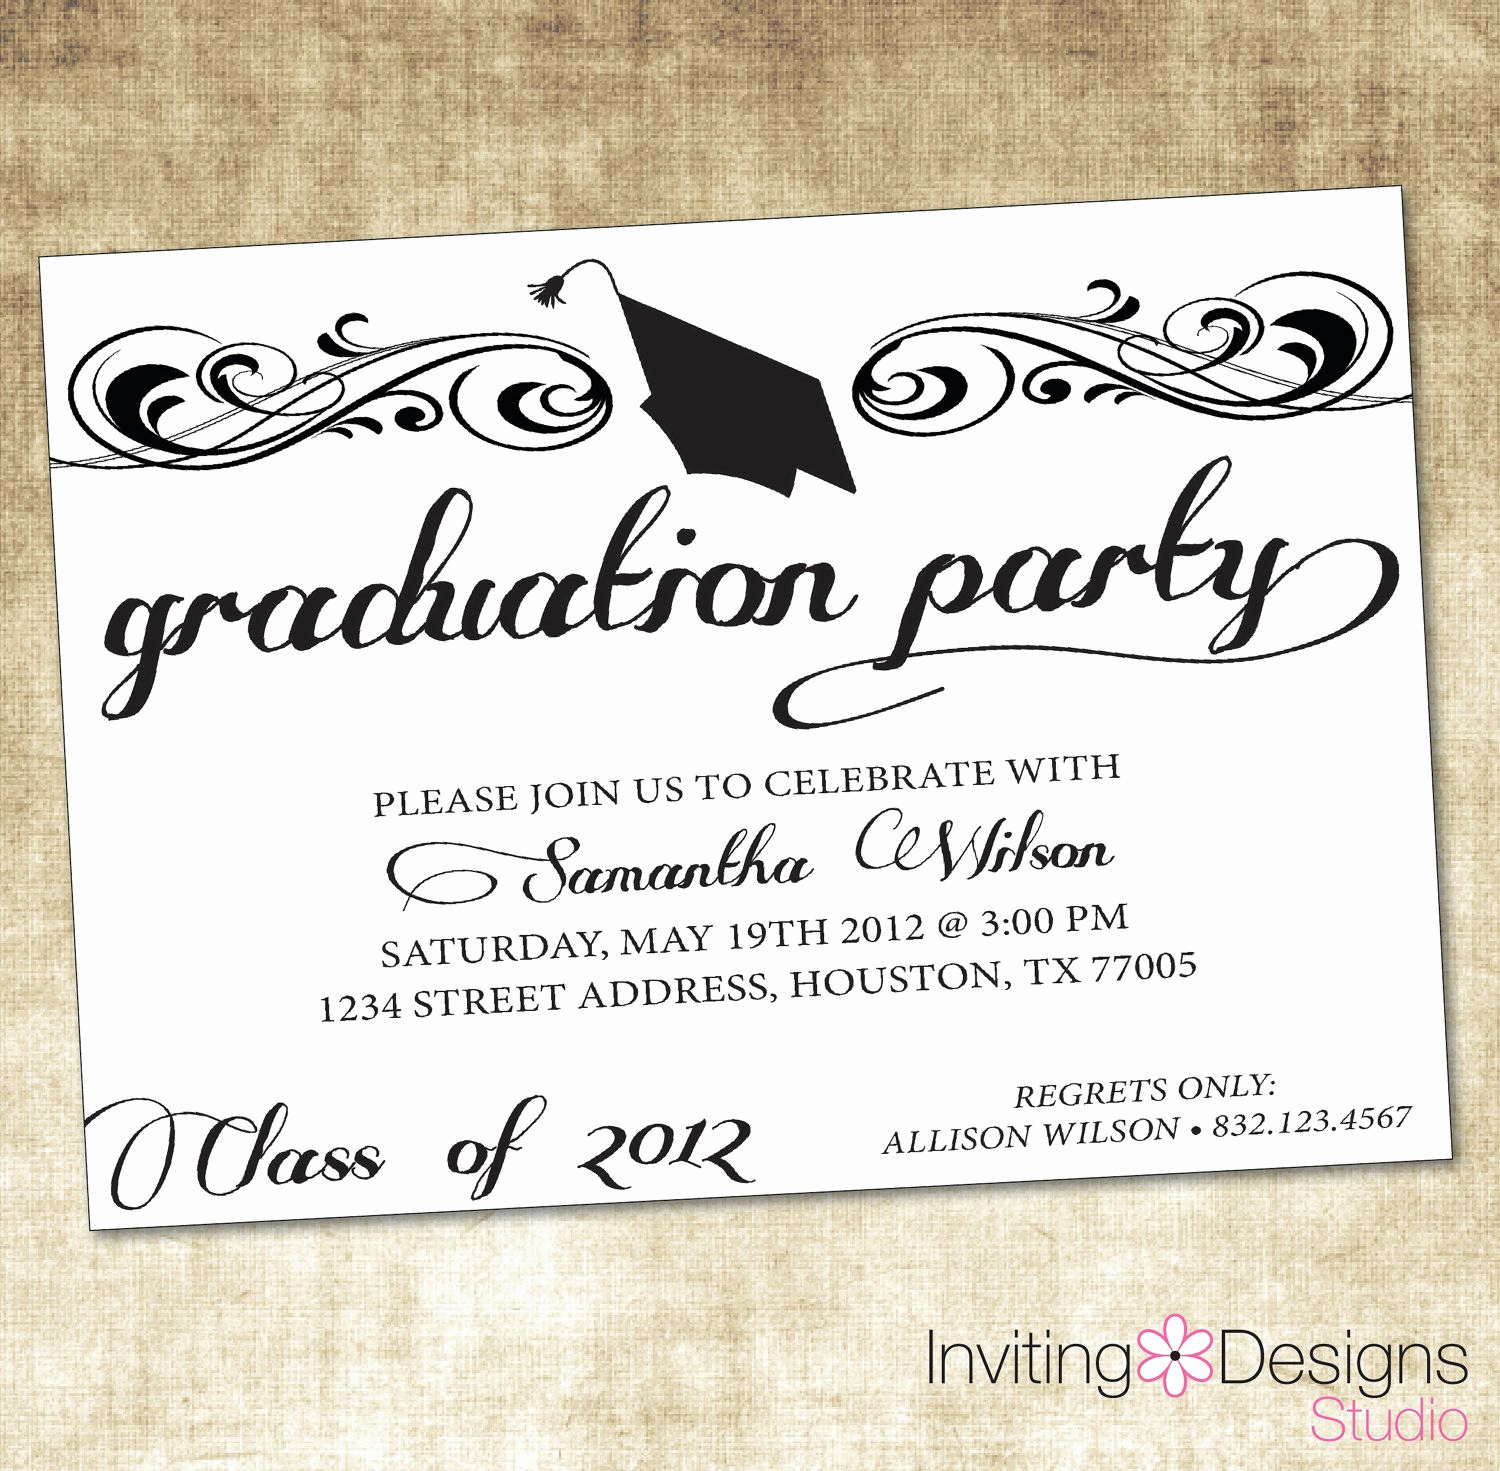 Wording for Graduation Party Invitation Elegant Image Result for Graduation Party Invitation Wording Ideas